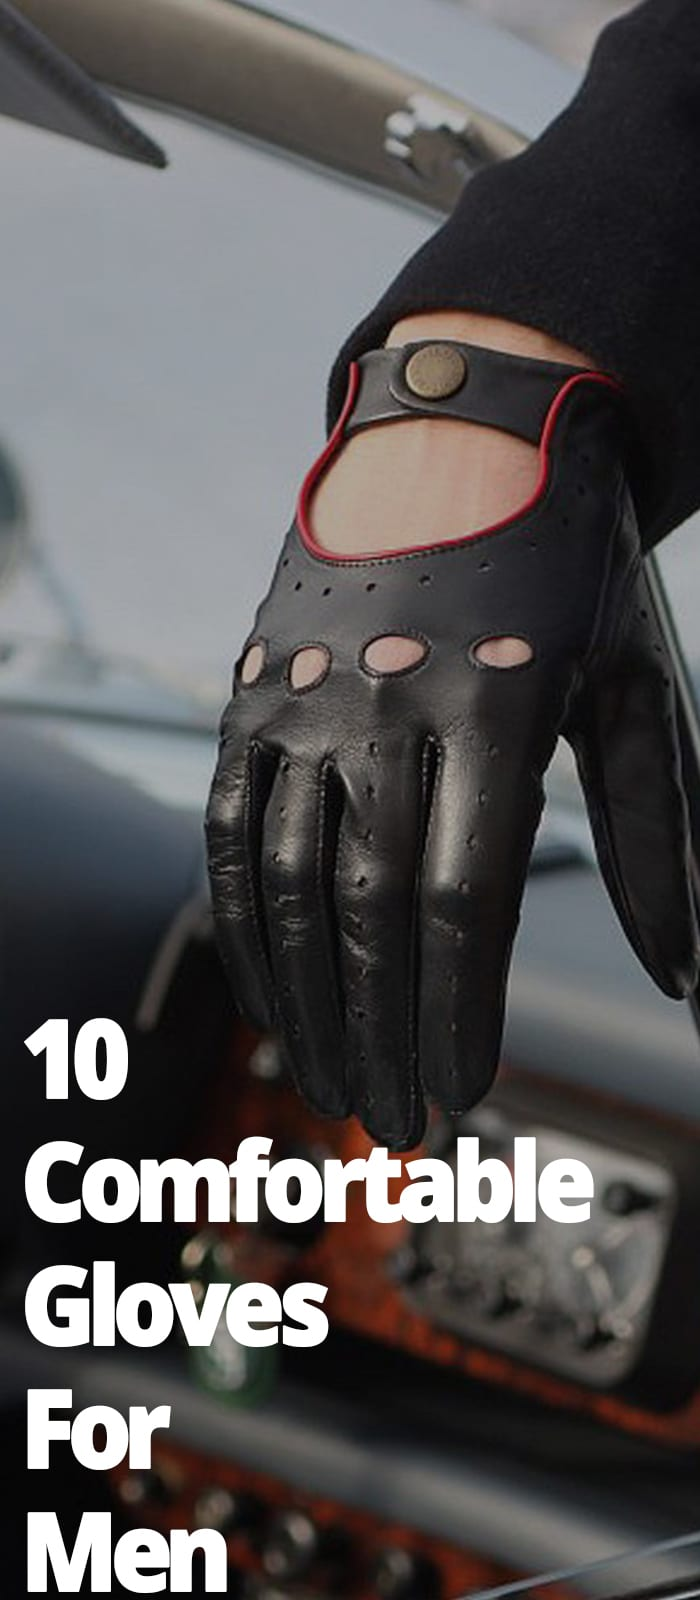 10 COMFORTABLE GLOVES